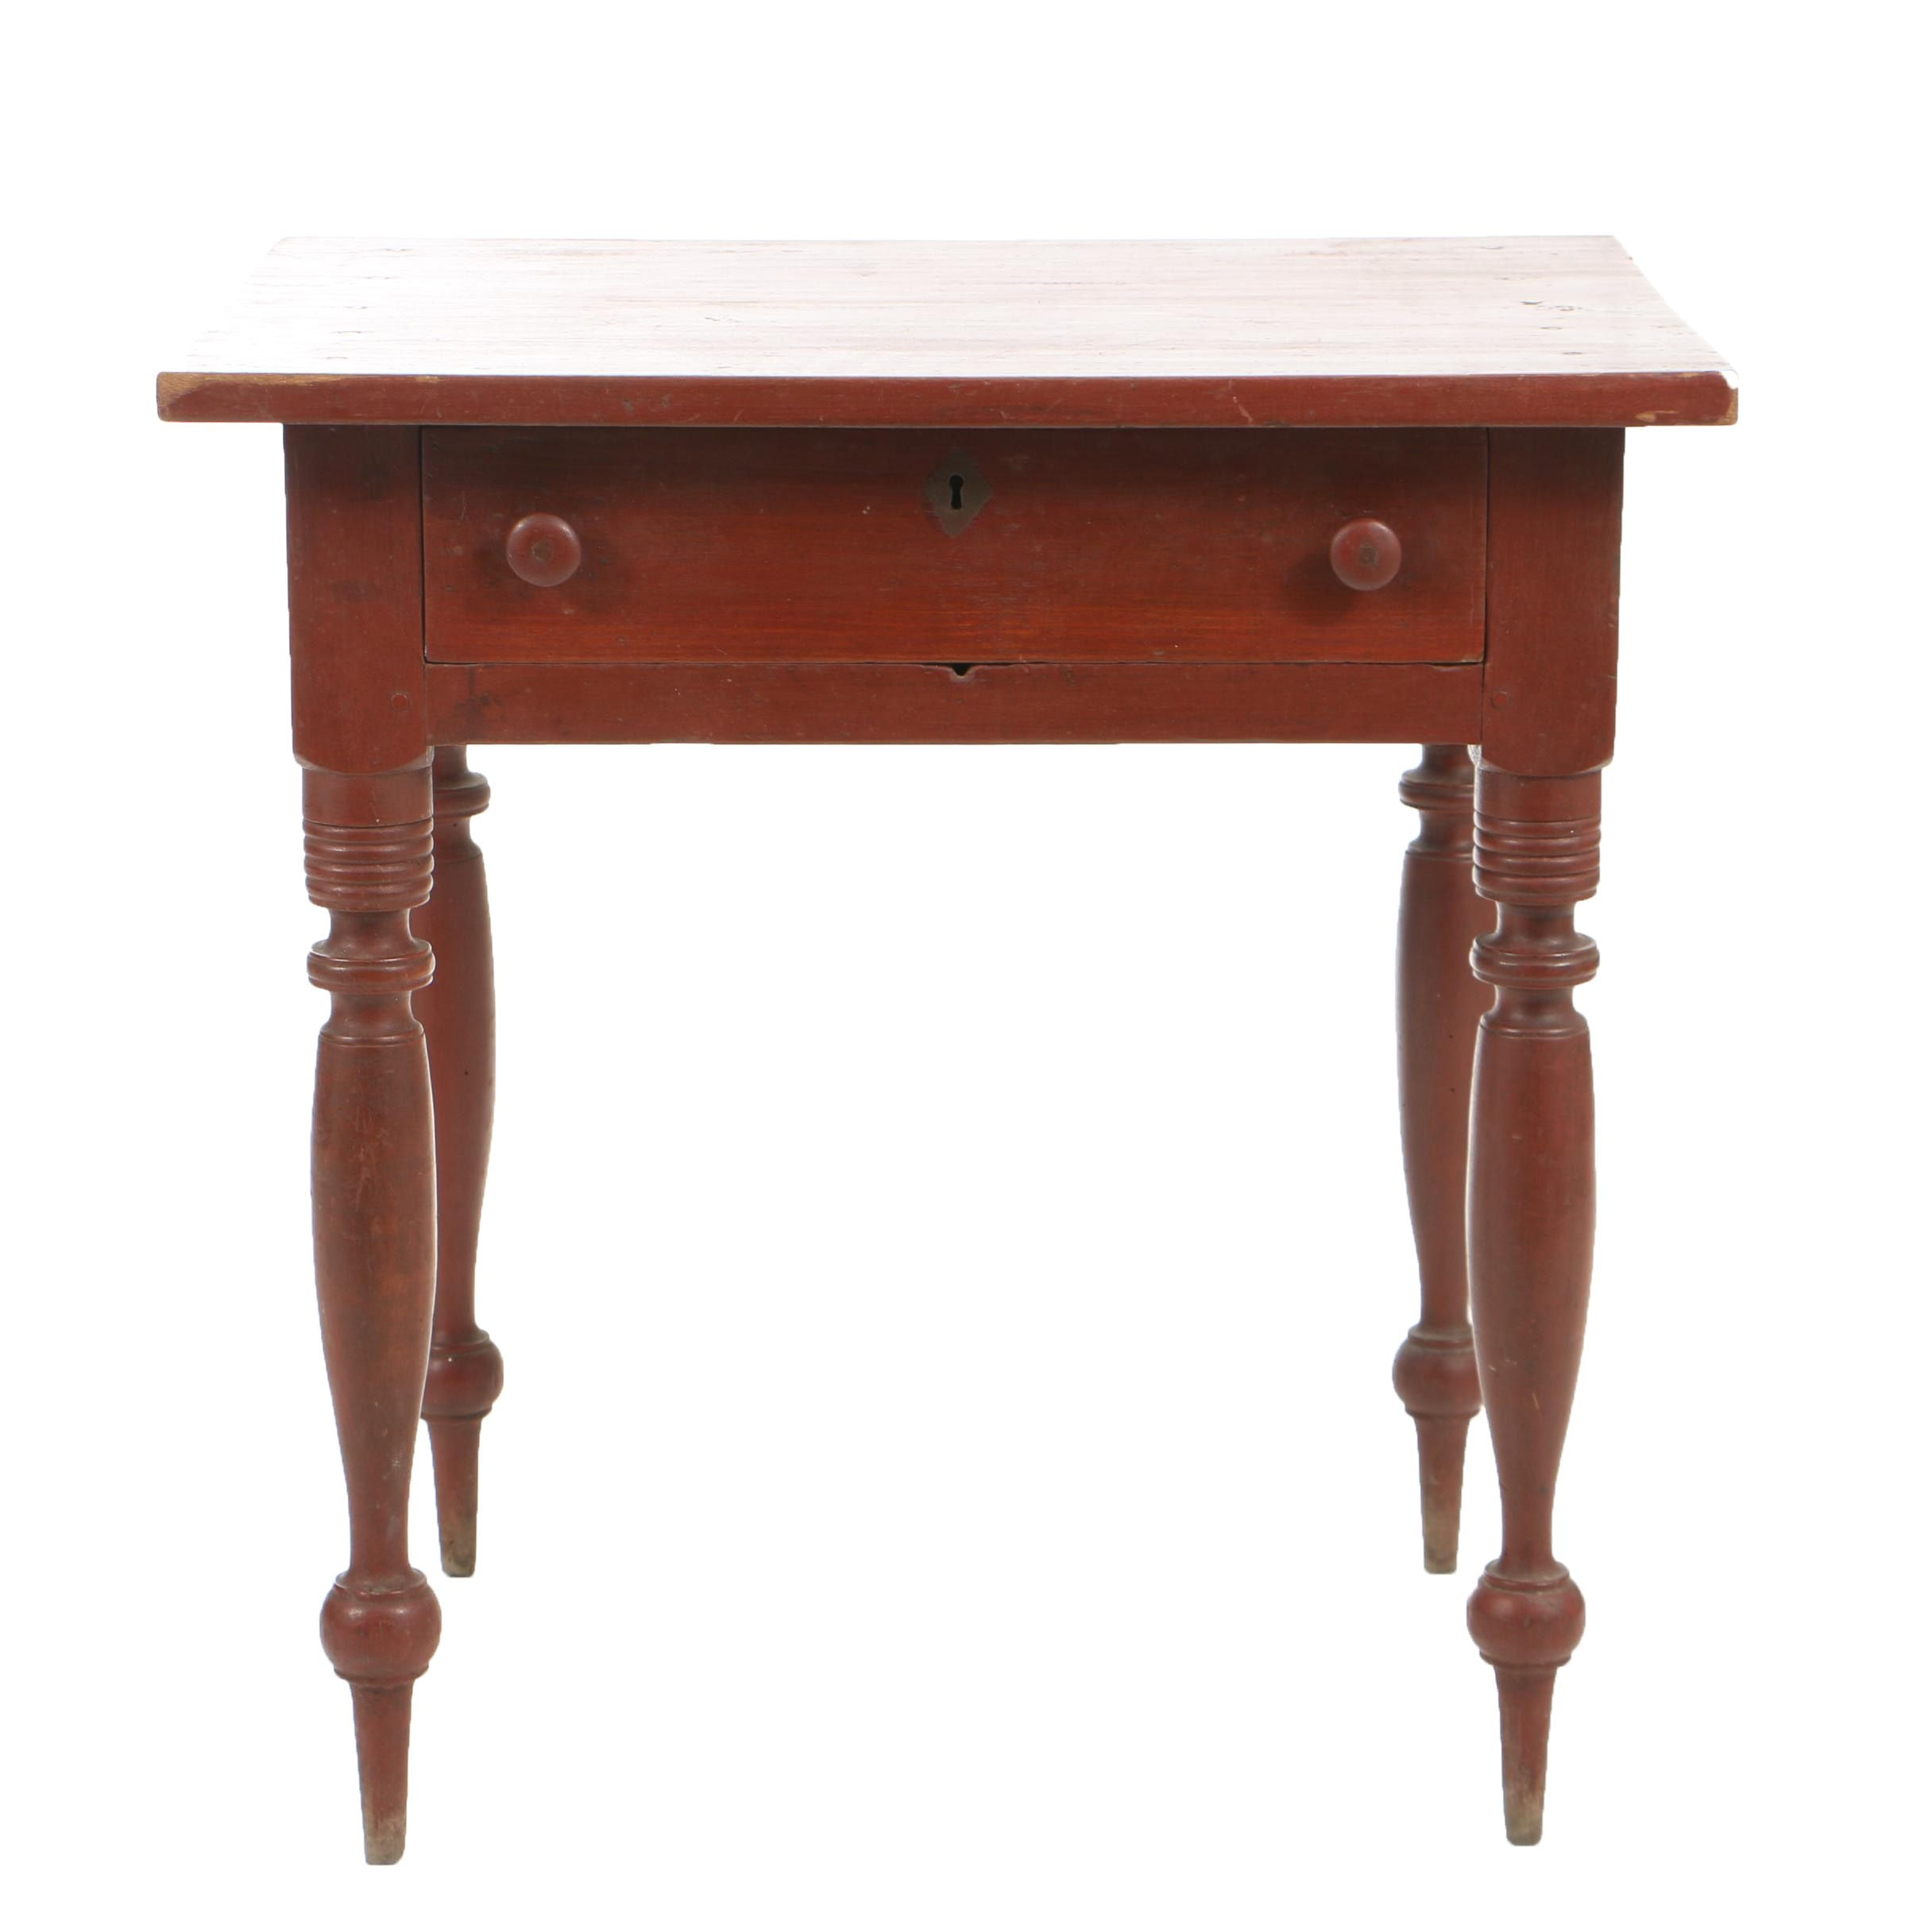 Antique Late Federal Red-Painted One-Drawer Stand